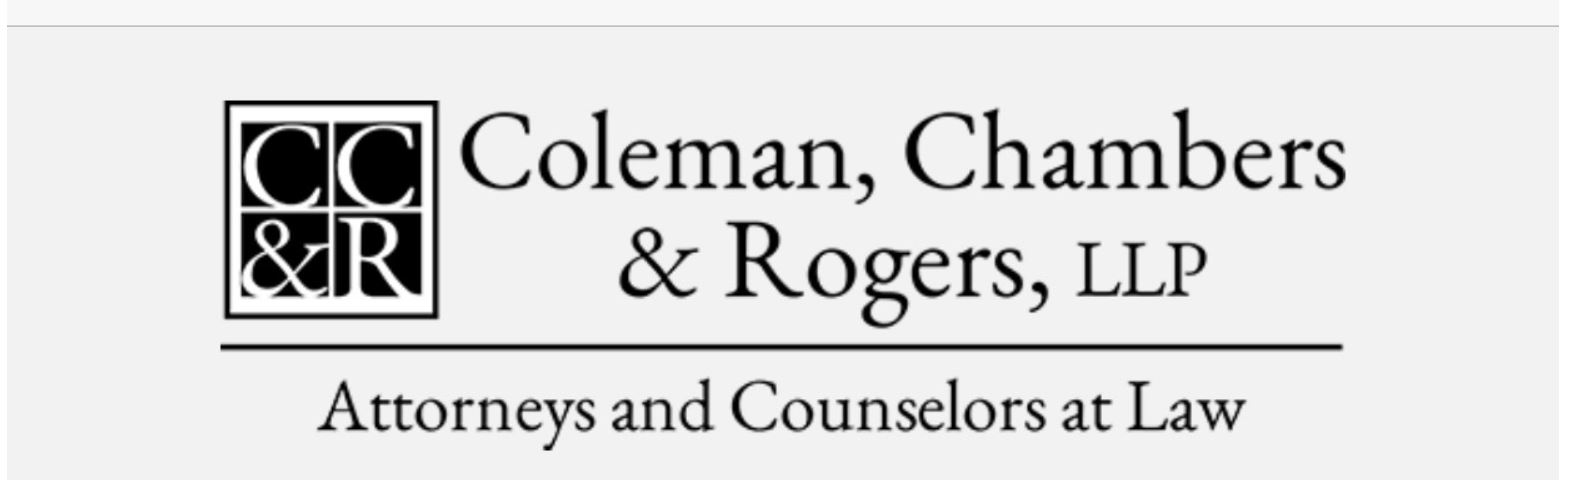 Coleman, Chambers & Rogers, LLP